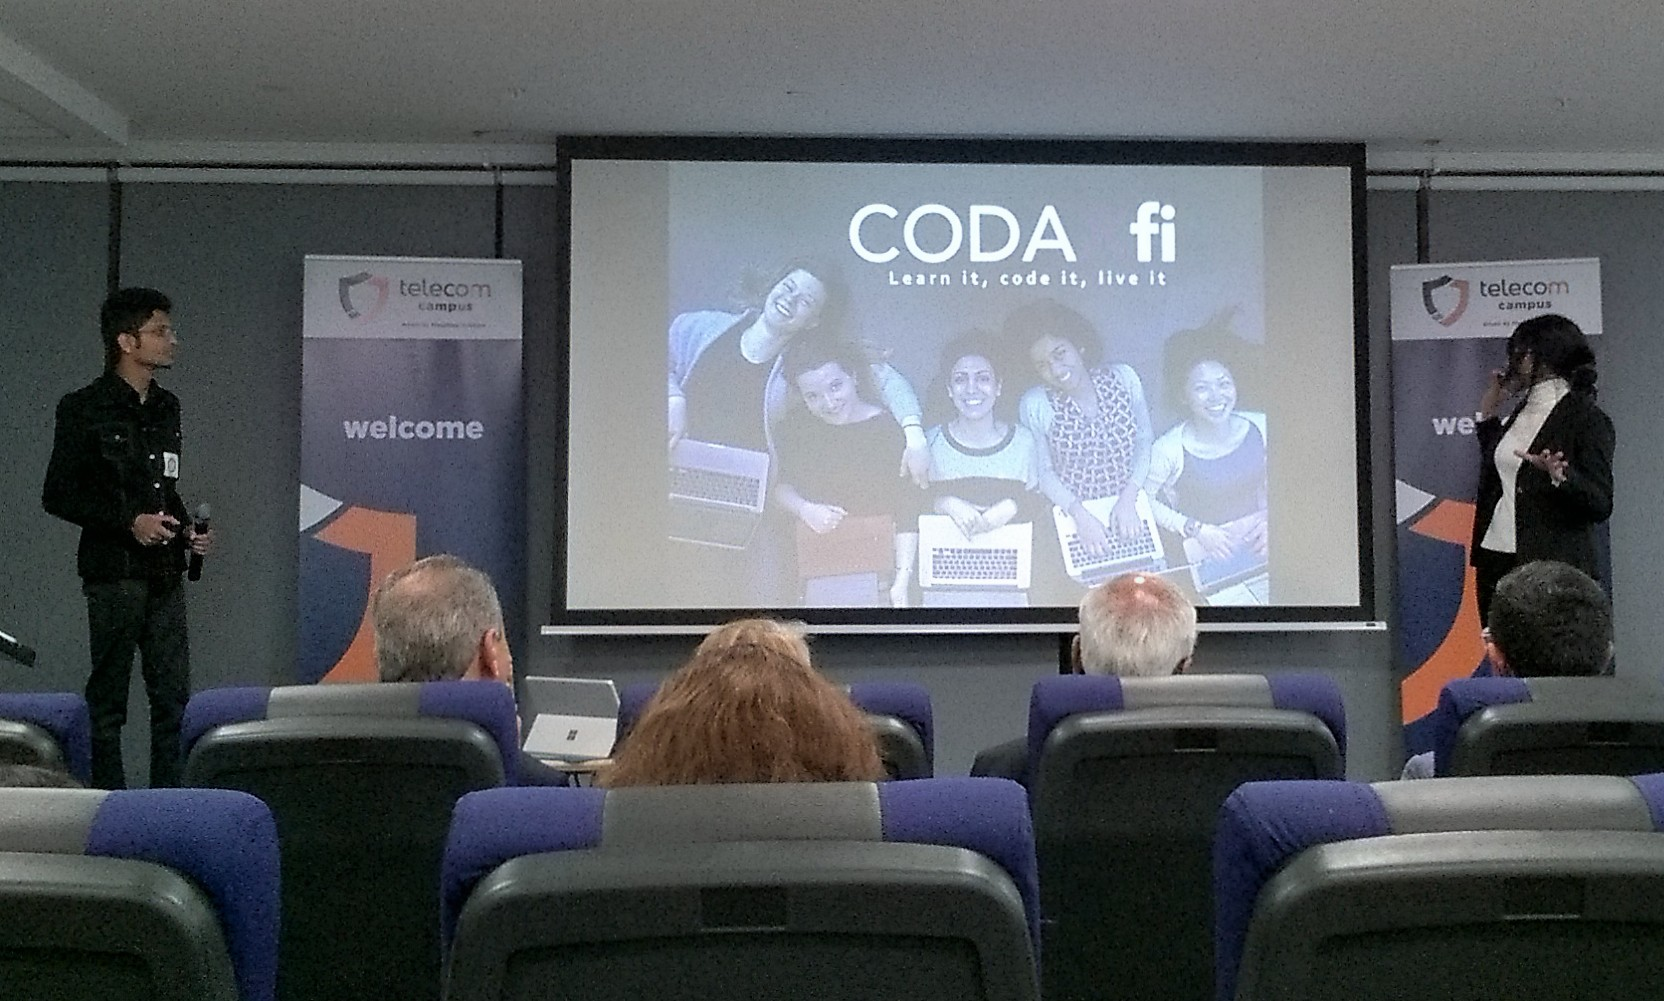 CodaxFi - Learn it, code it, live it: Connecting platform empowering women and girls in coding